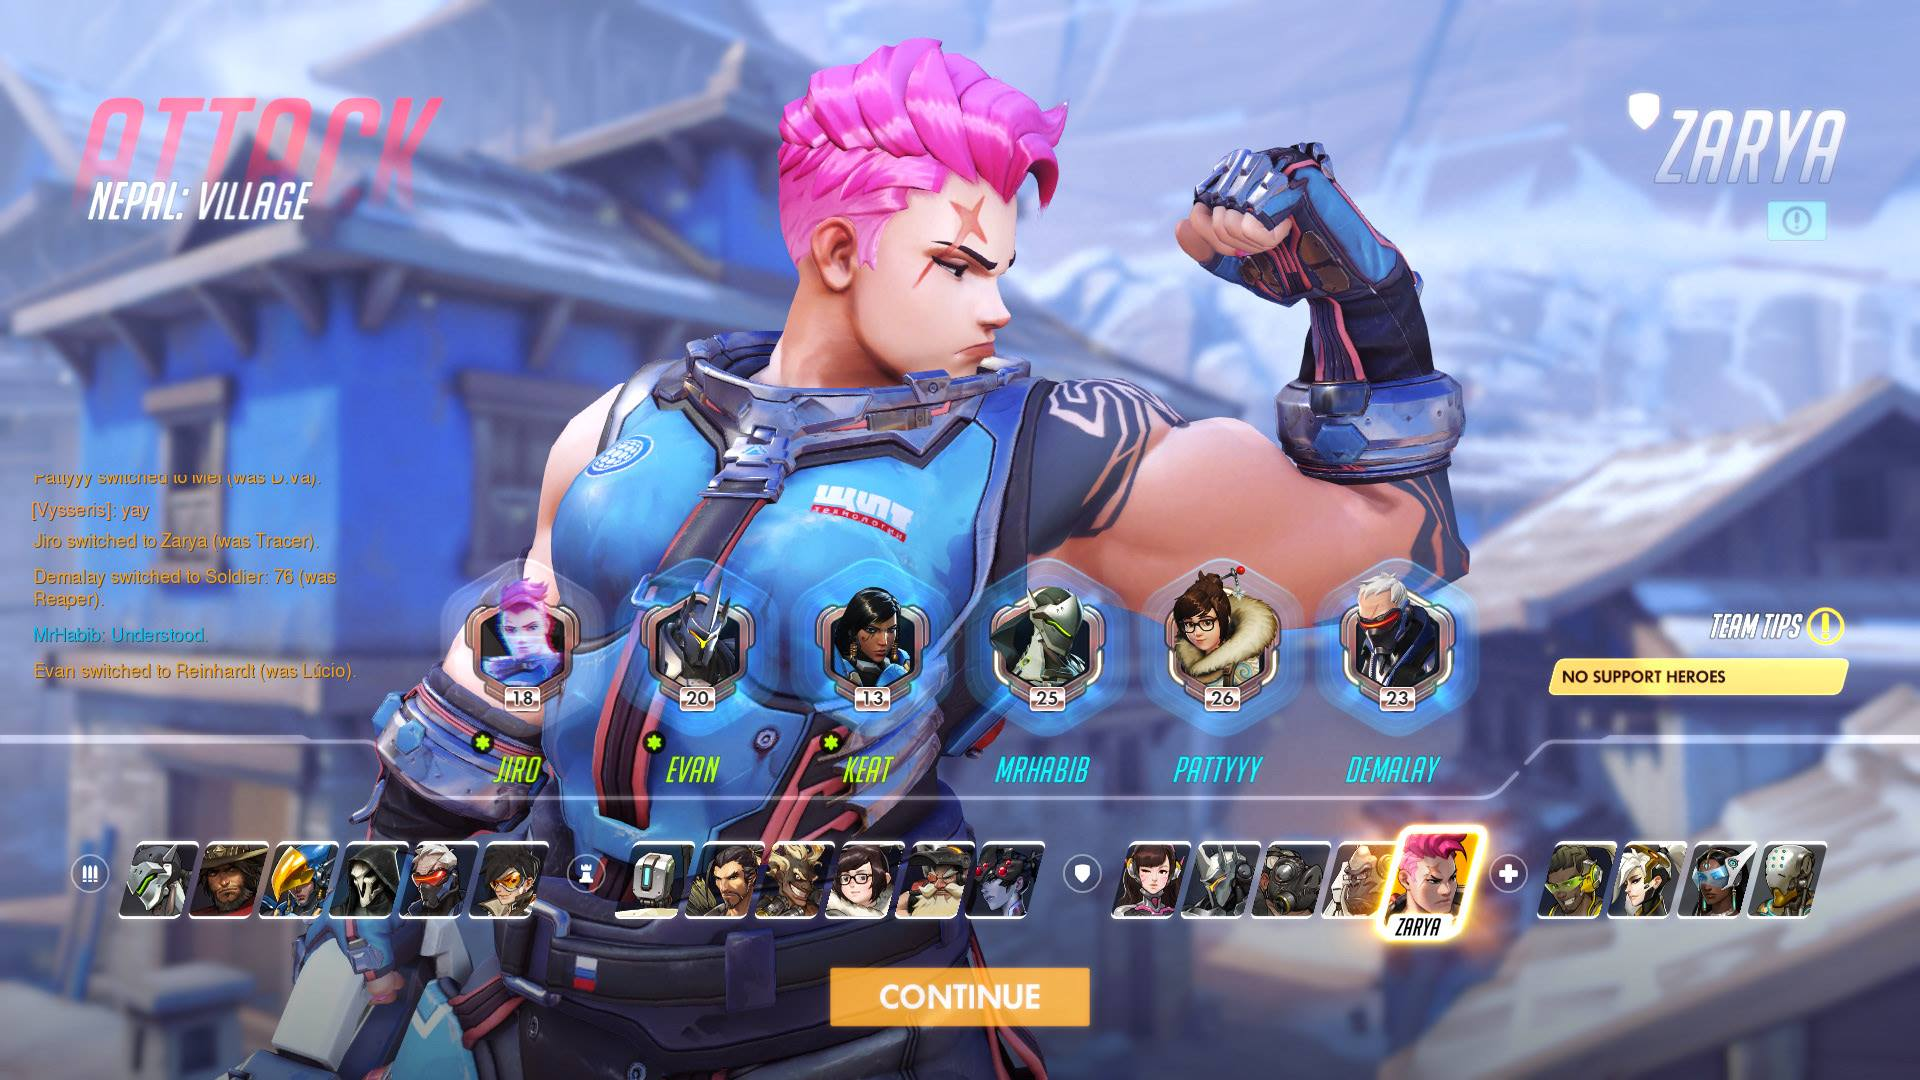 A feminine figure with short unnaturally coloured hair flexes her bicepts. The portraits of other character overlay her.